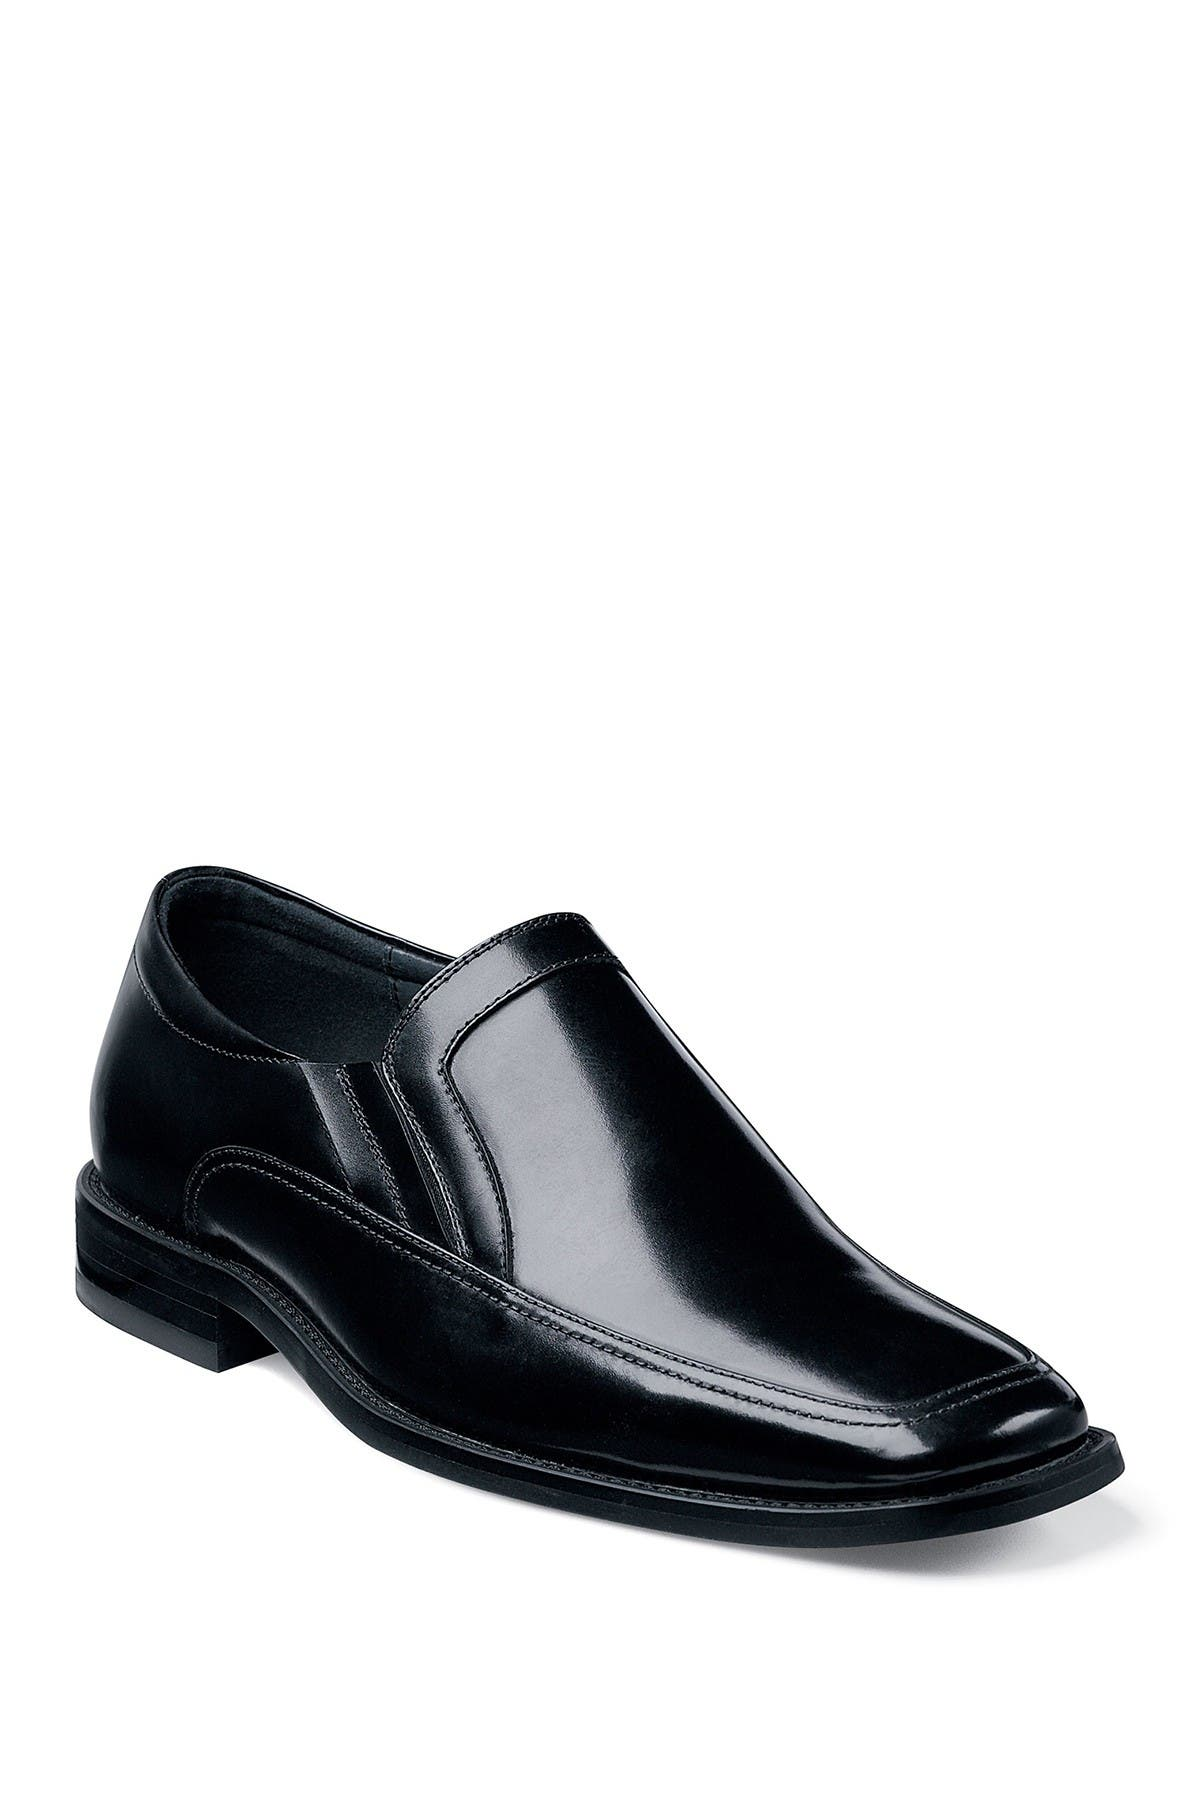 Image of Stacy Adams Felton Apron Toe Slip-On Loafer - Wide Width Available